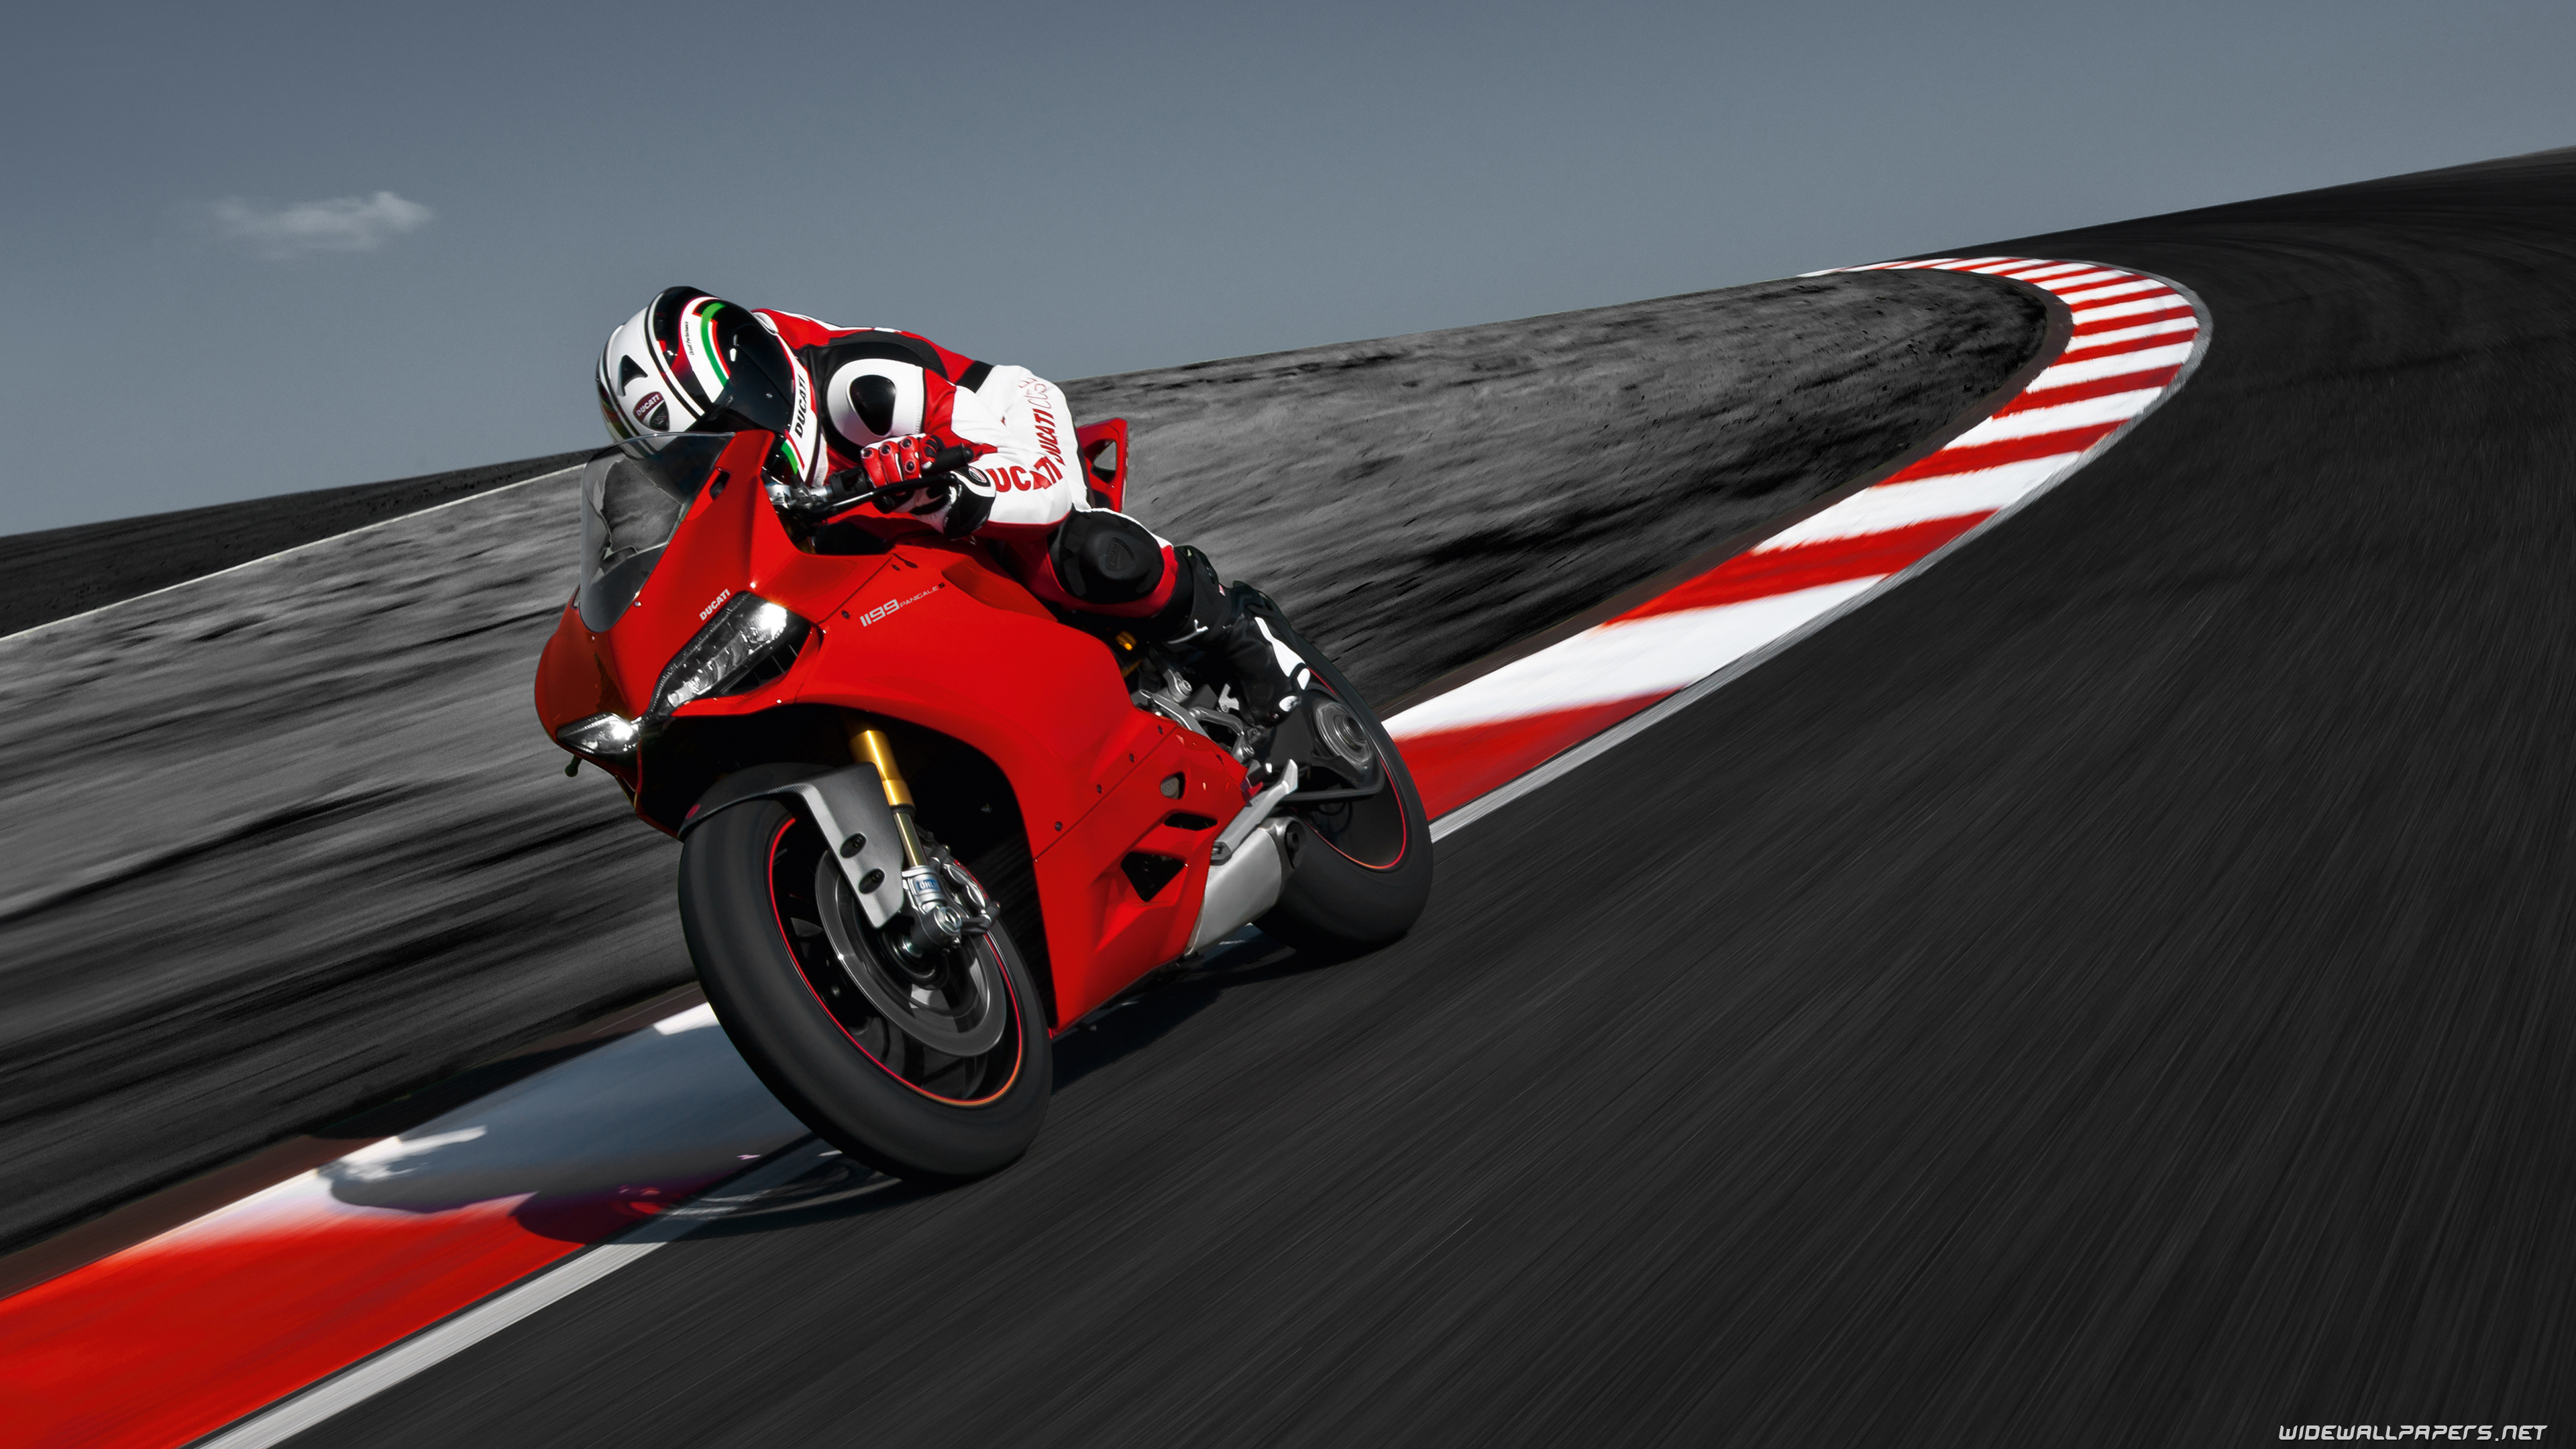 Ducati Superbike 1199 Panigale S Motorcycle Wallpapers